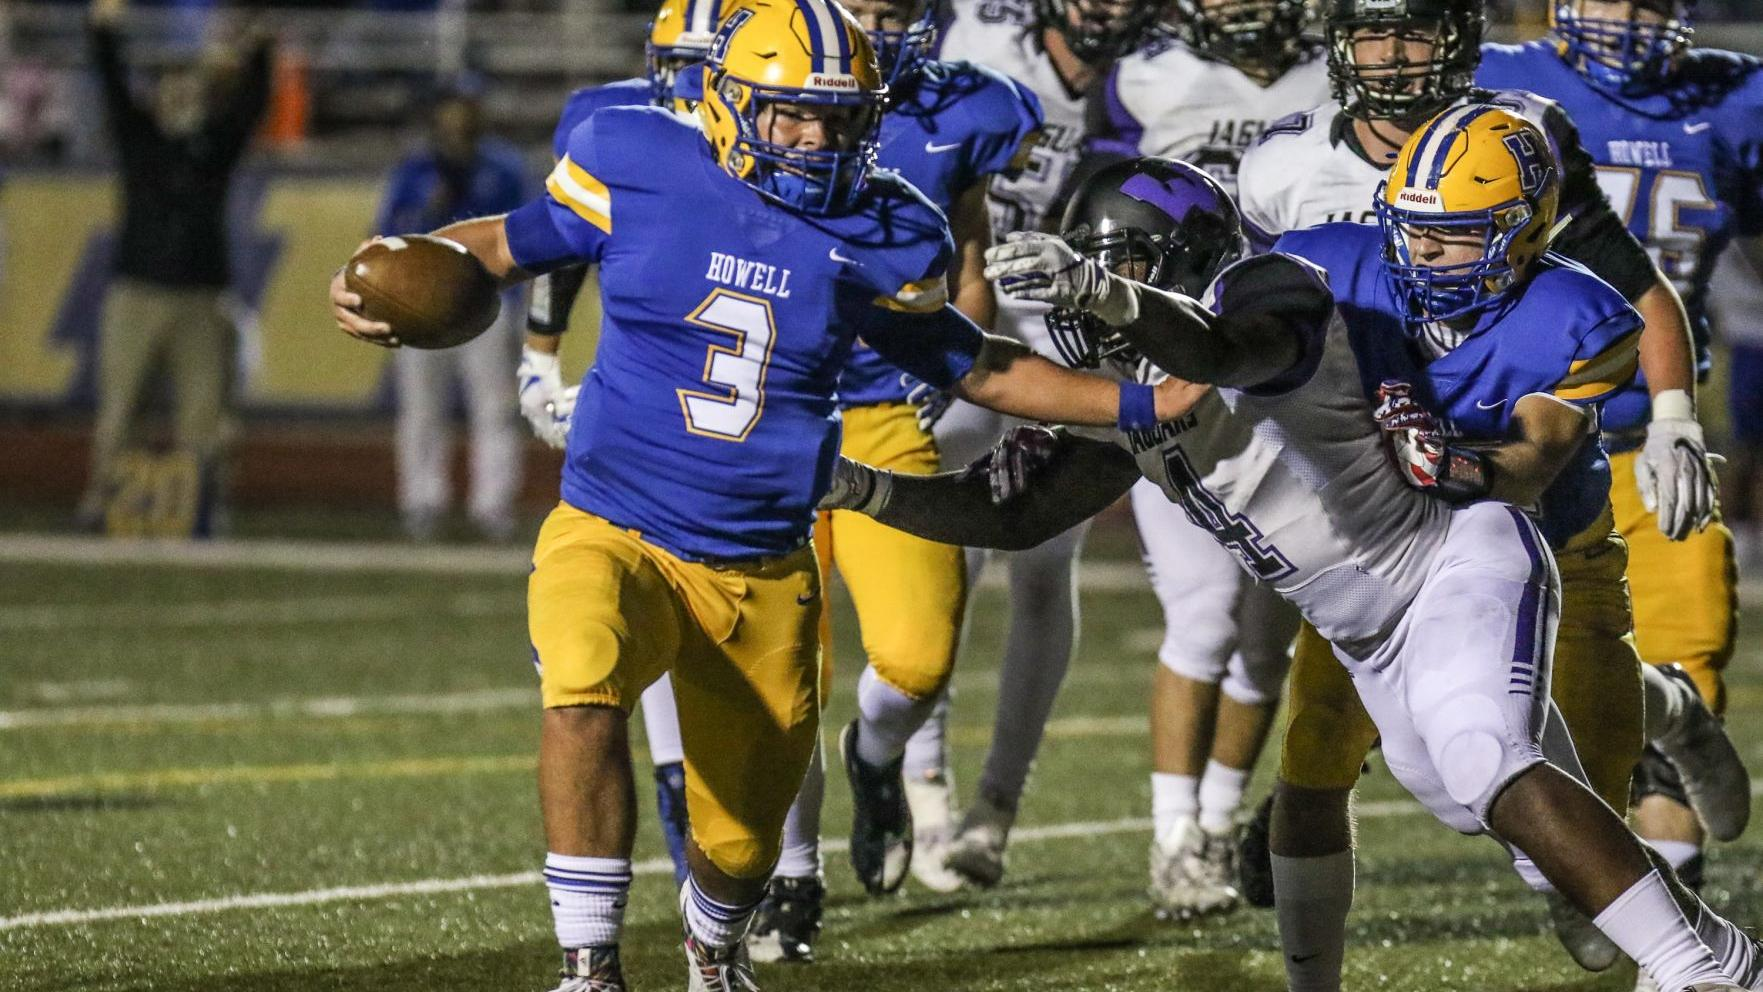 McDaniel accounts for four scores in Francis Howell's win over Fort Zumwalt West